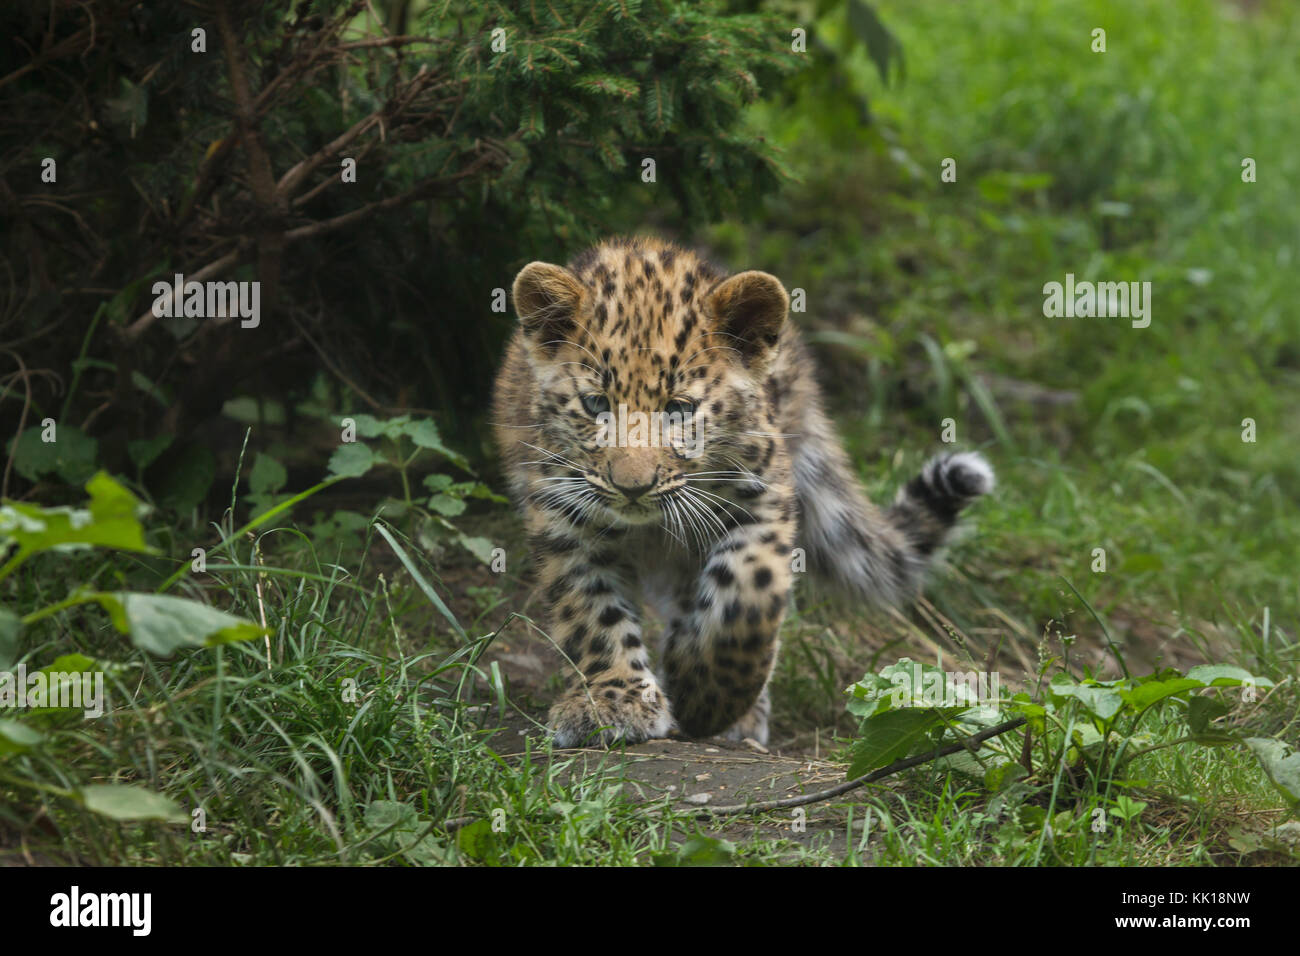 Three-month-old Amur leopard (Panthera pardus orientalis) at Leipzig Zoo in Leipzig, Saxony, Germany. Two Amur leopards Stock Photo